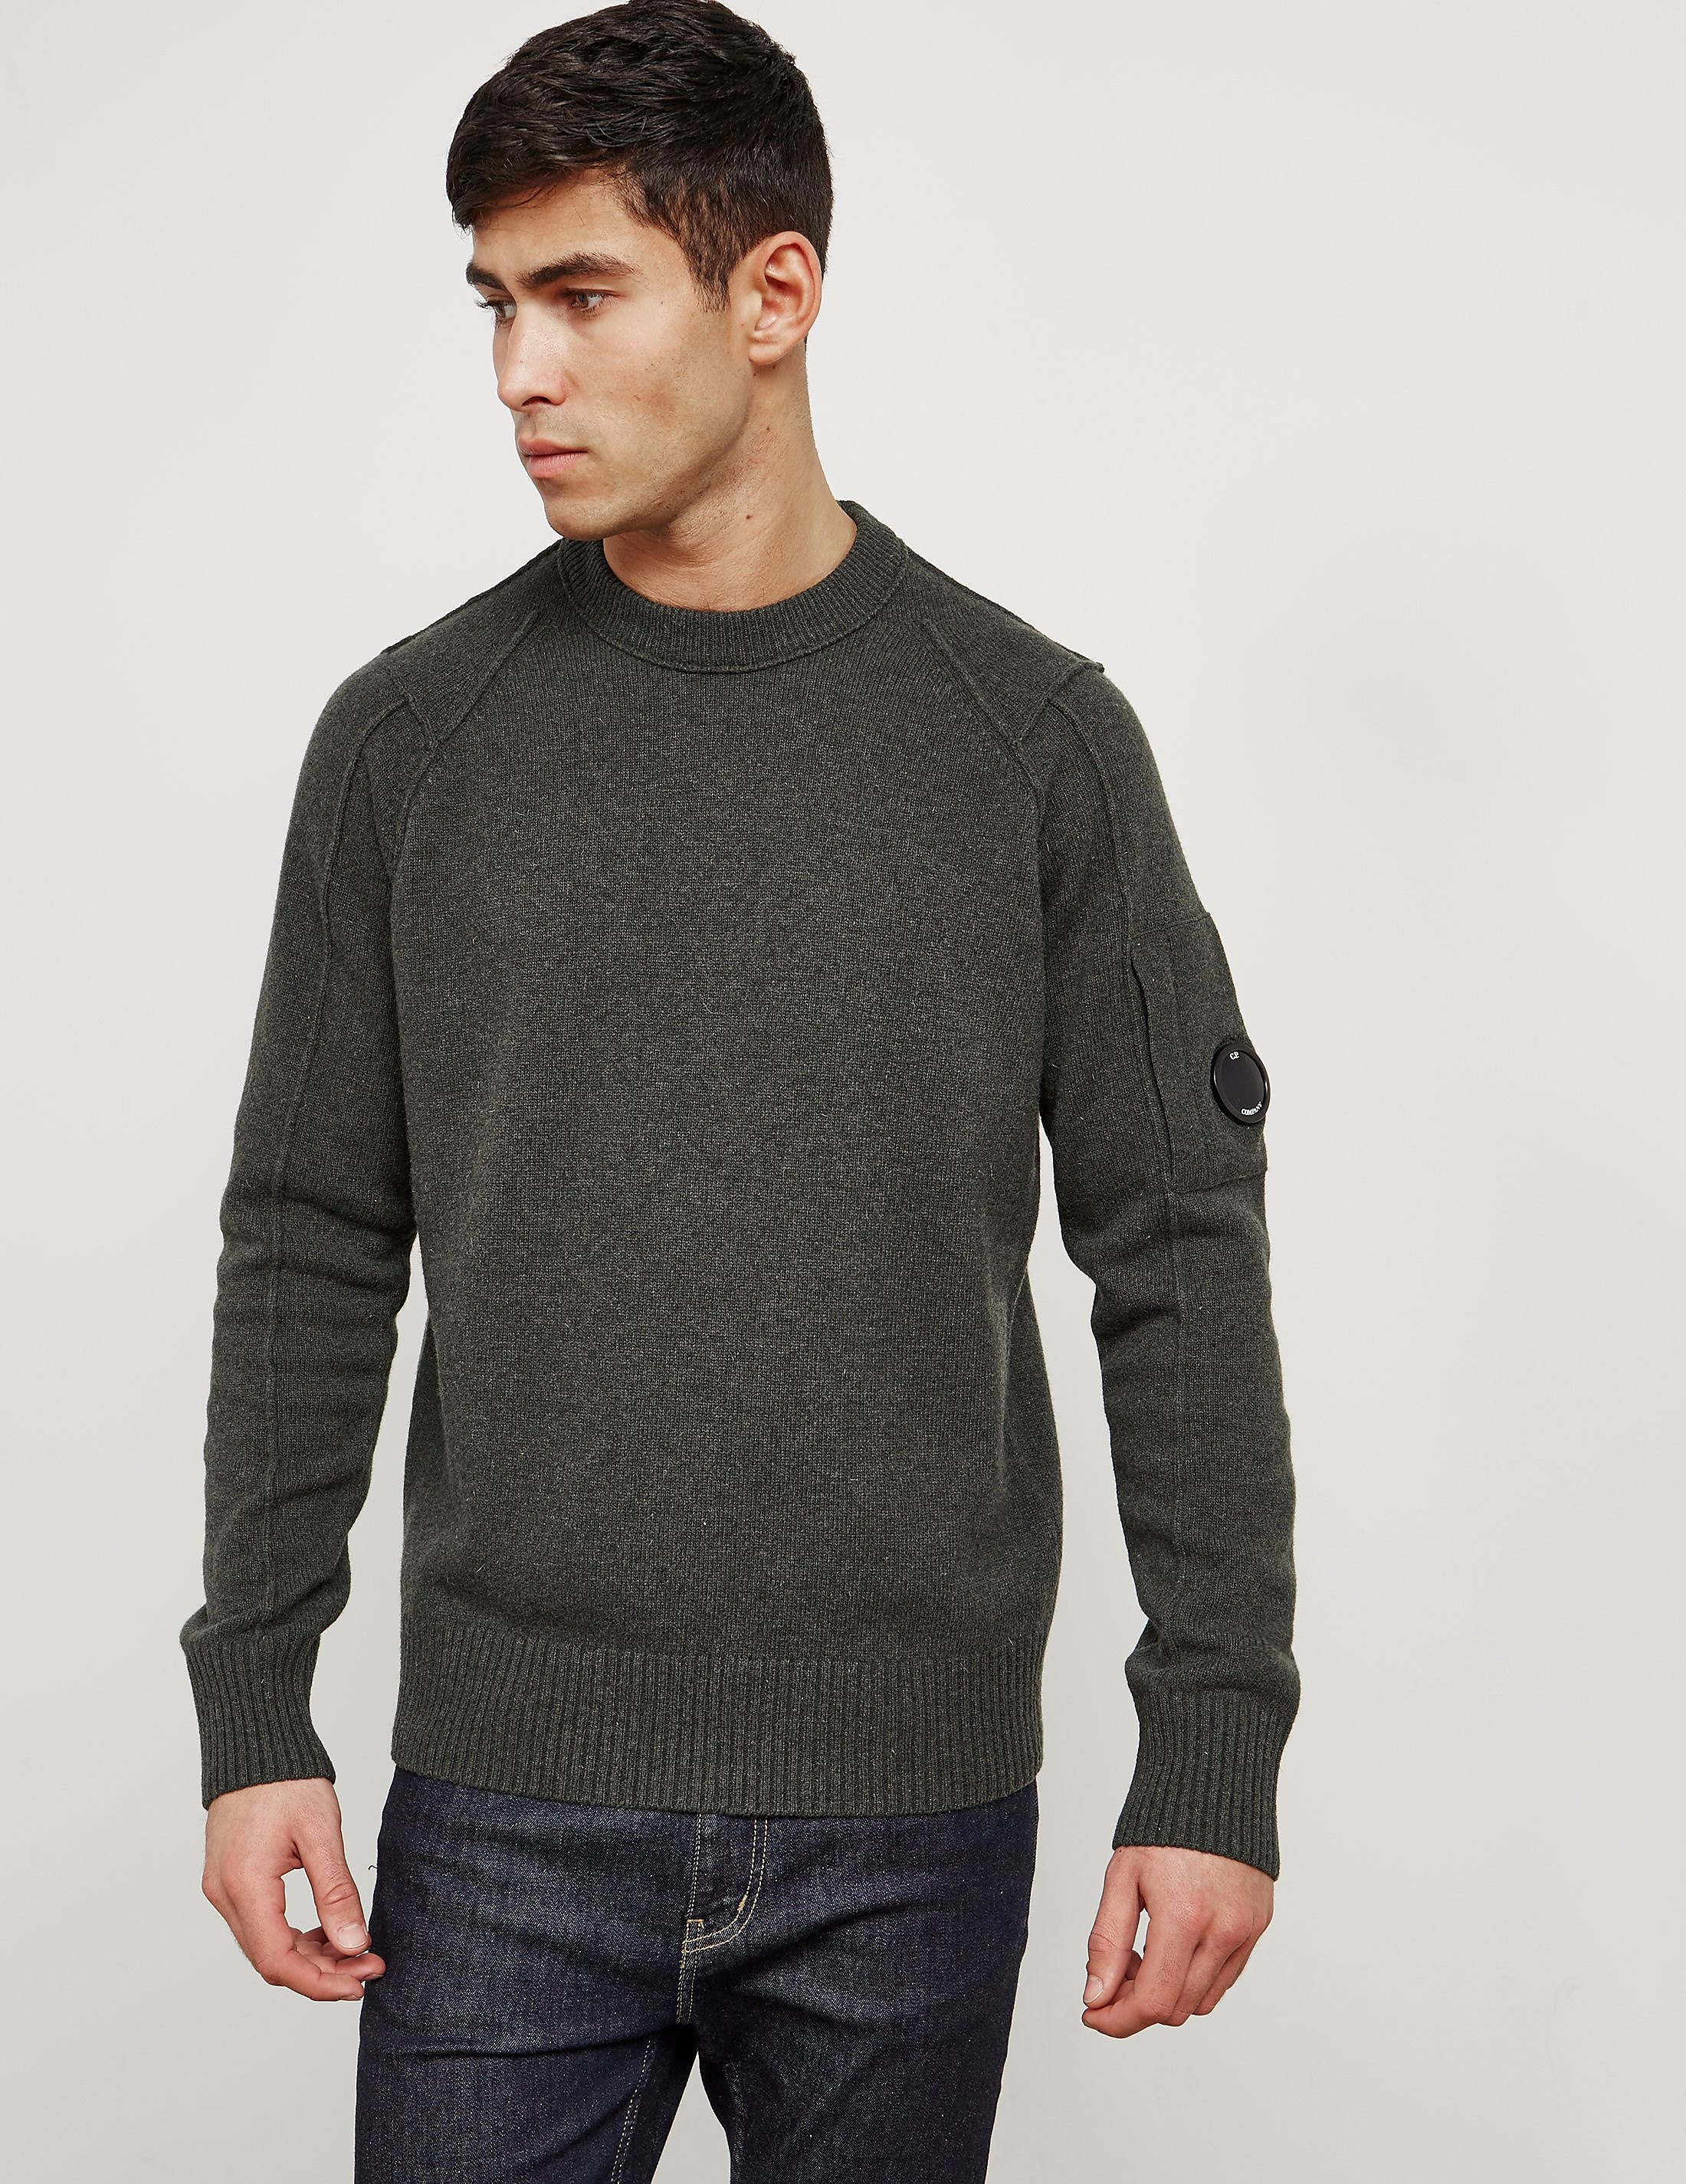 CP Company Lens Crew Neck Knitted Jumper